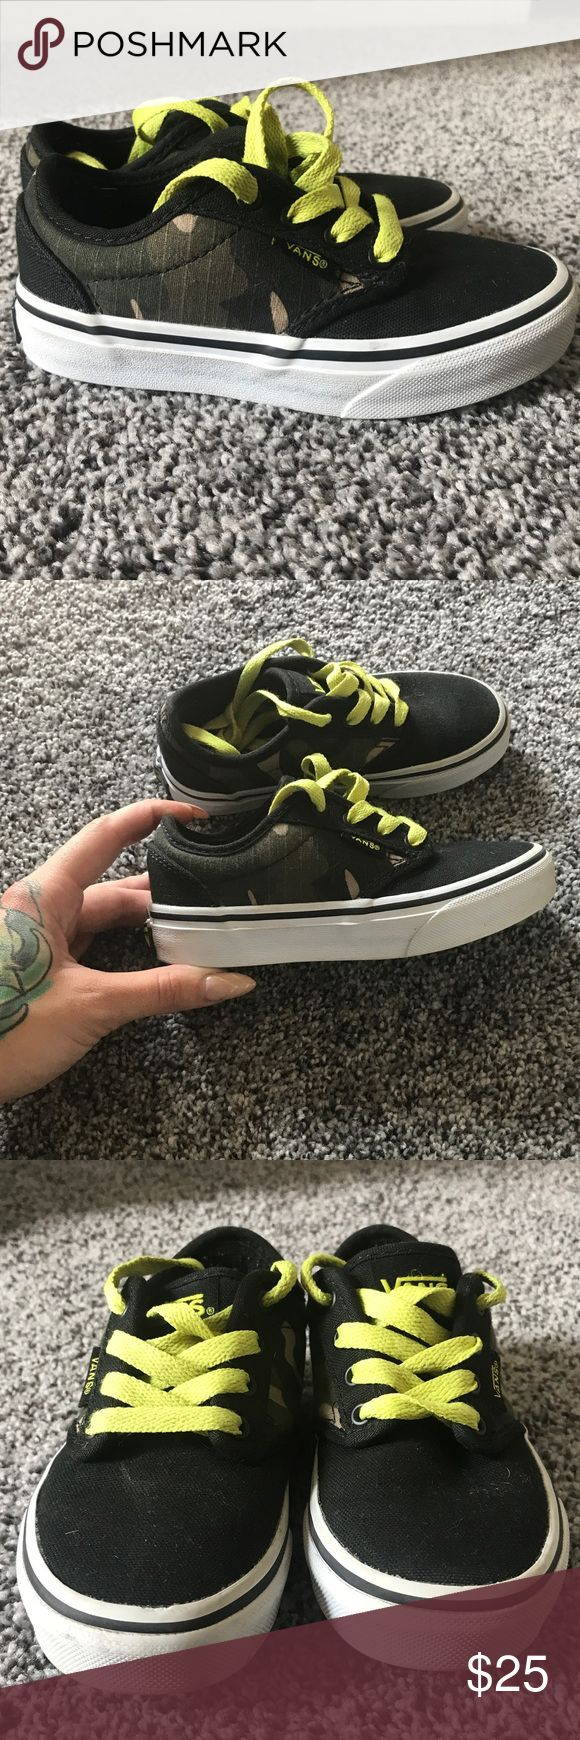 Boys Vans low top sneakers camo and black!! Boys Vans low top camo, black and neon green sneakers in a size 10.5. Excellent preowned condition, could use a magic eraser sole touch up but other than that, they're great and have tons of love left 🖤 I give awesome discounts on my kids gear! Just throw your likes into a bundle and I'll send you an offer just for you! 🎃 Vans Shoes Sneakers